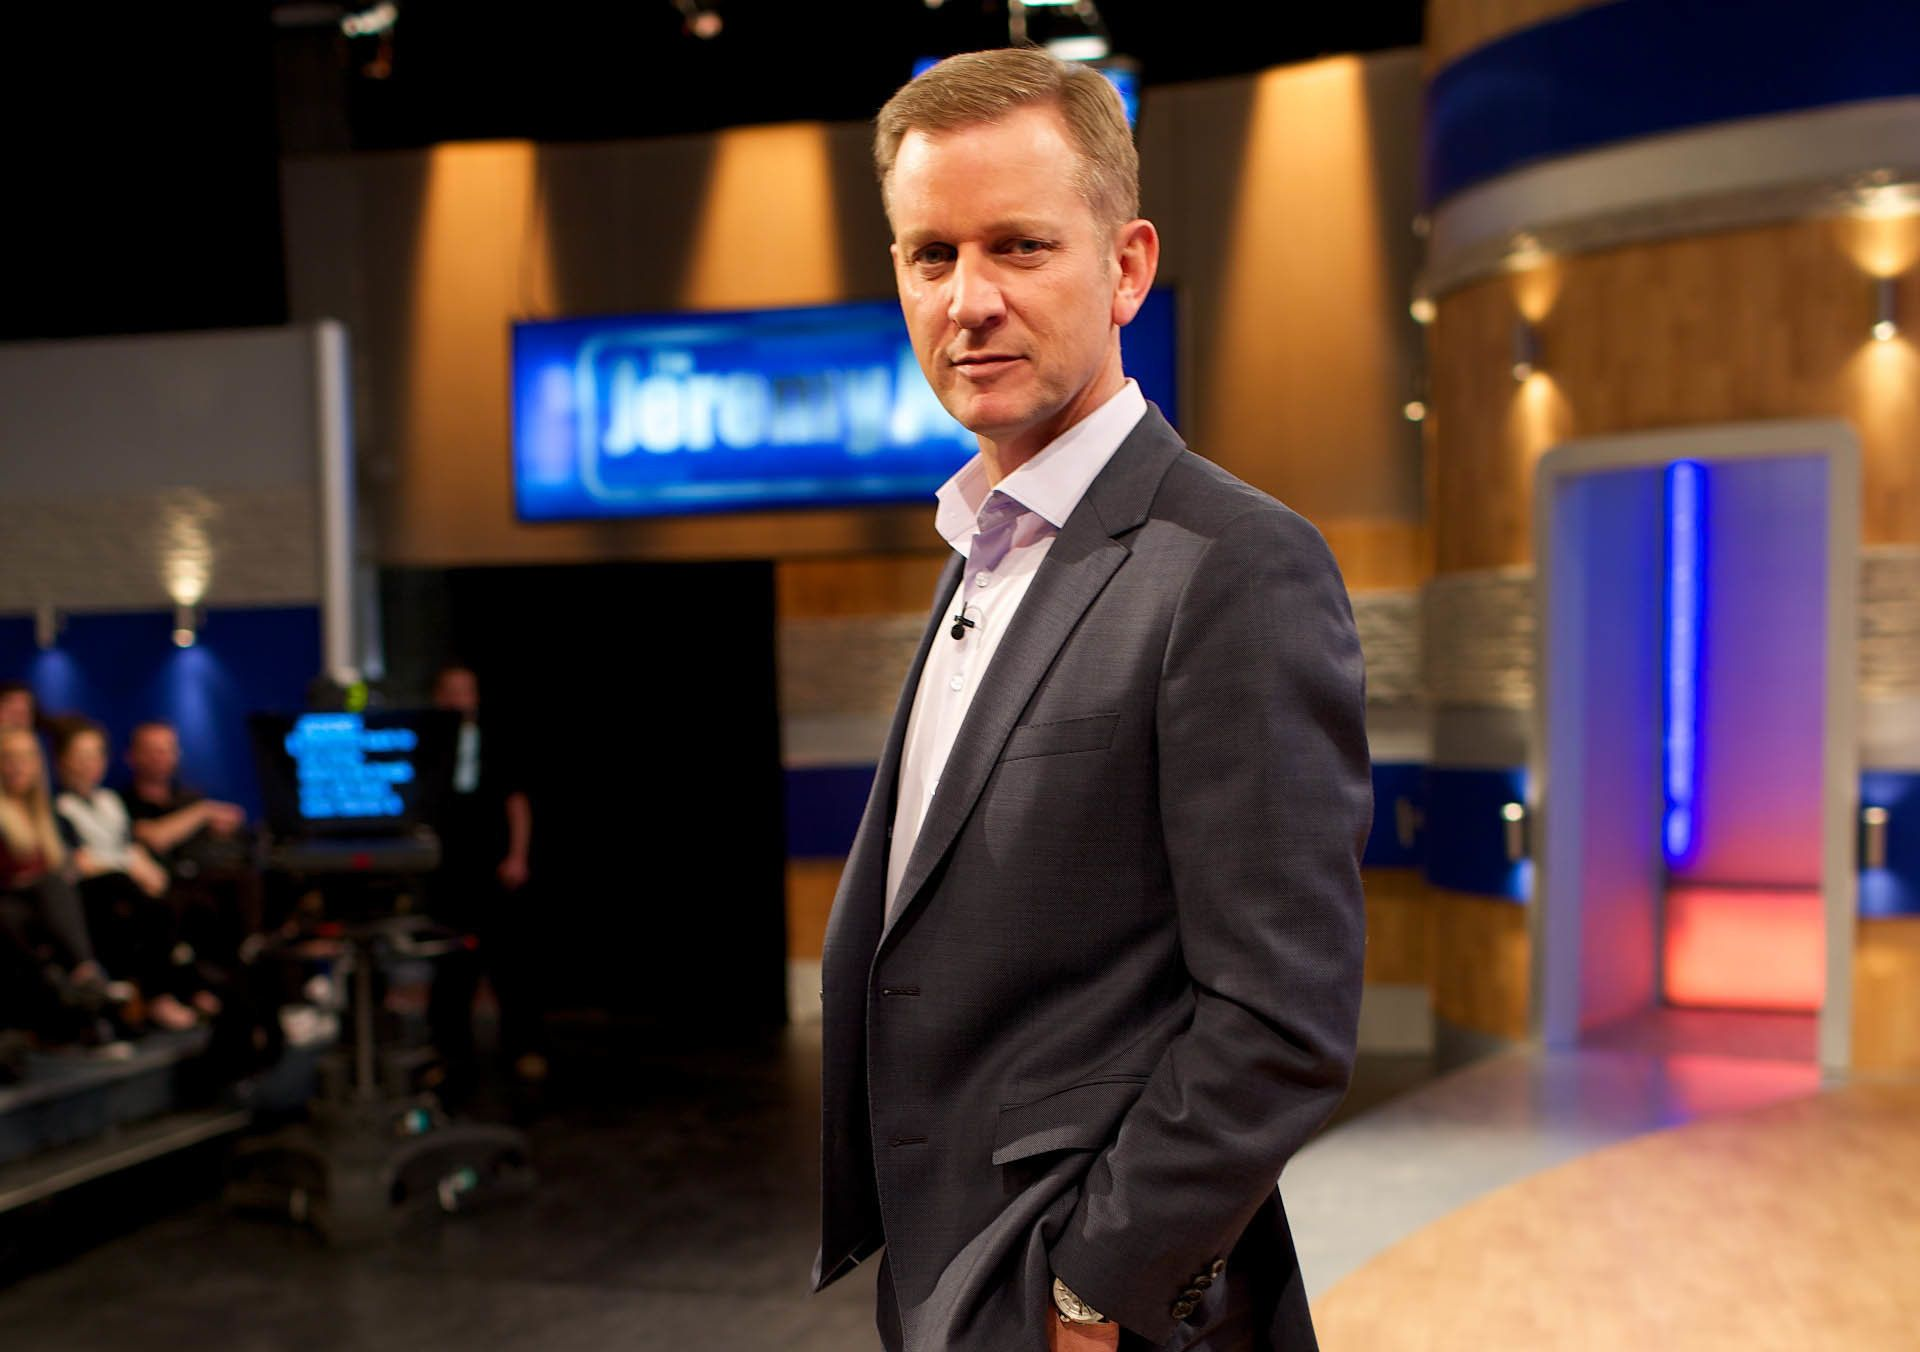 'The Jeremy Kyle Show' was witness to some rather fruity